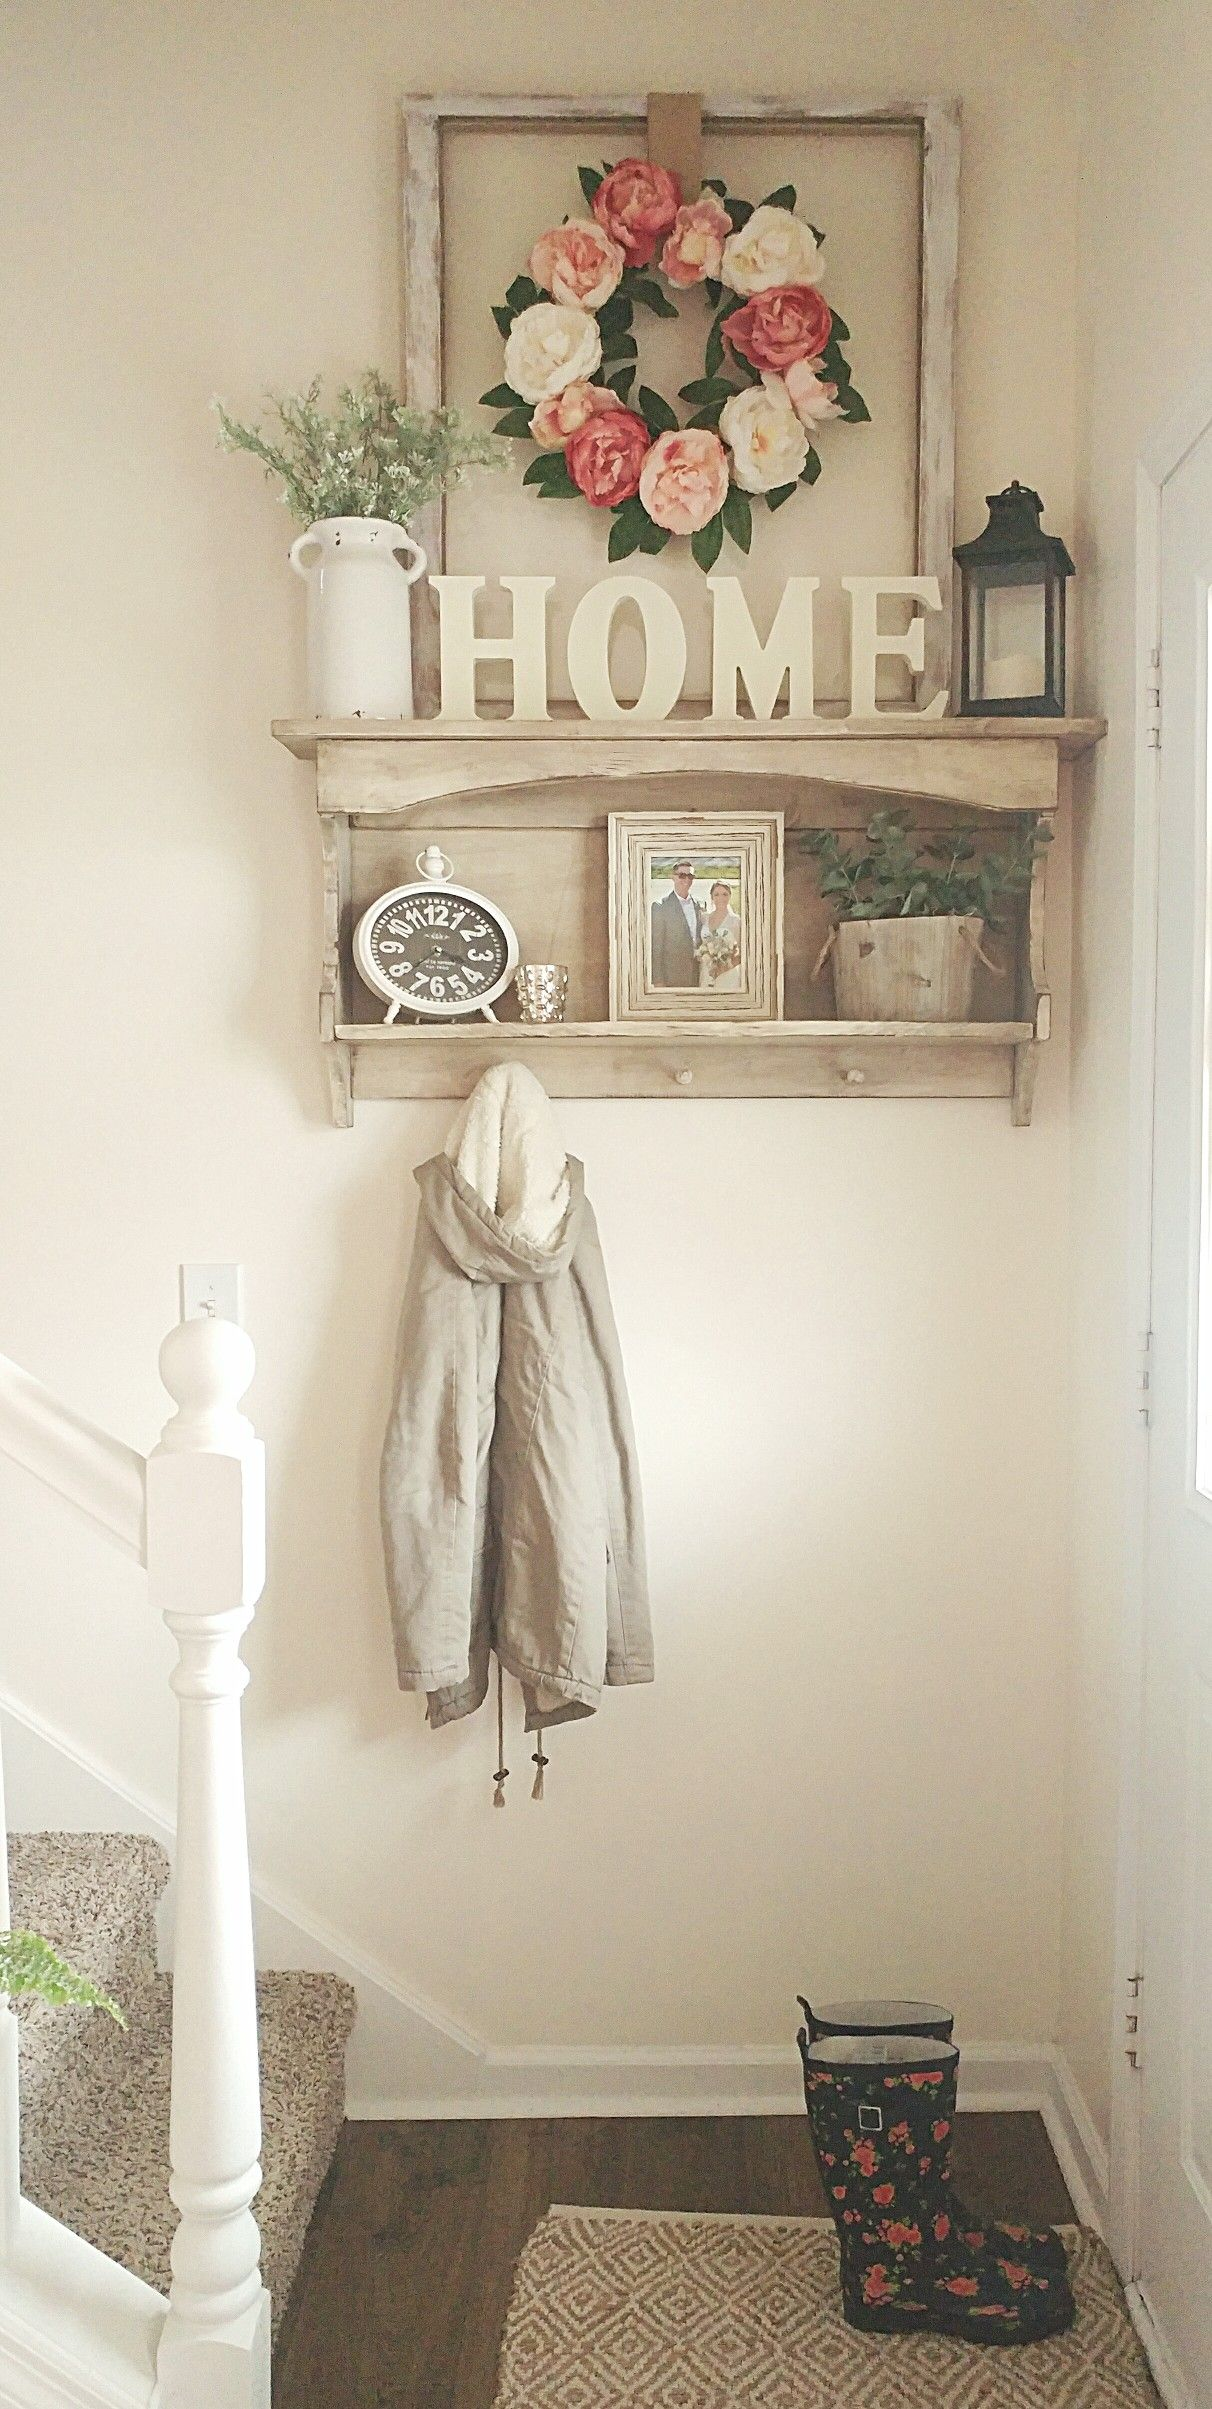 Dekoration Schlafzimmer Regal Small Entryway Spring Flowers Country White Farmhouse